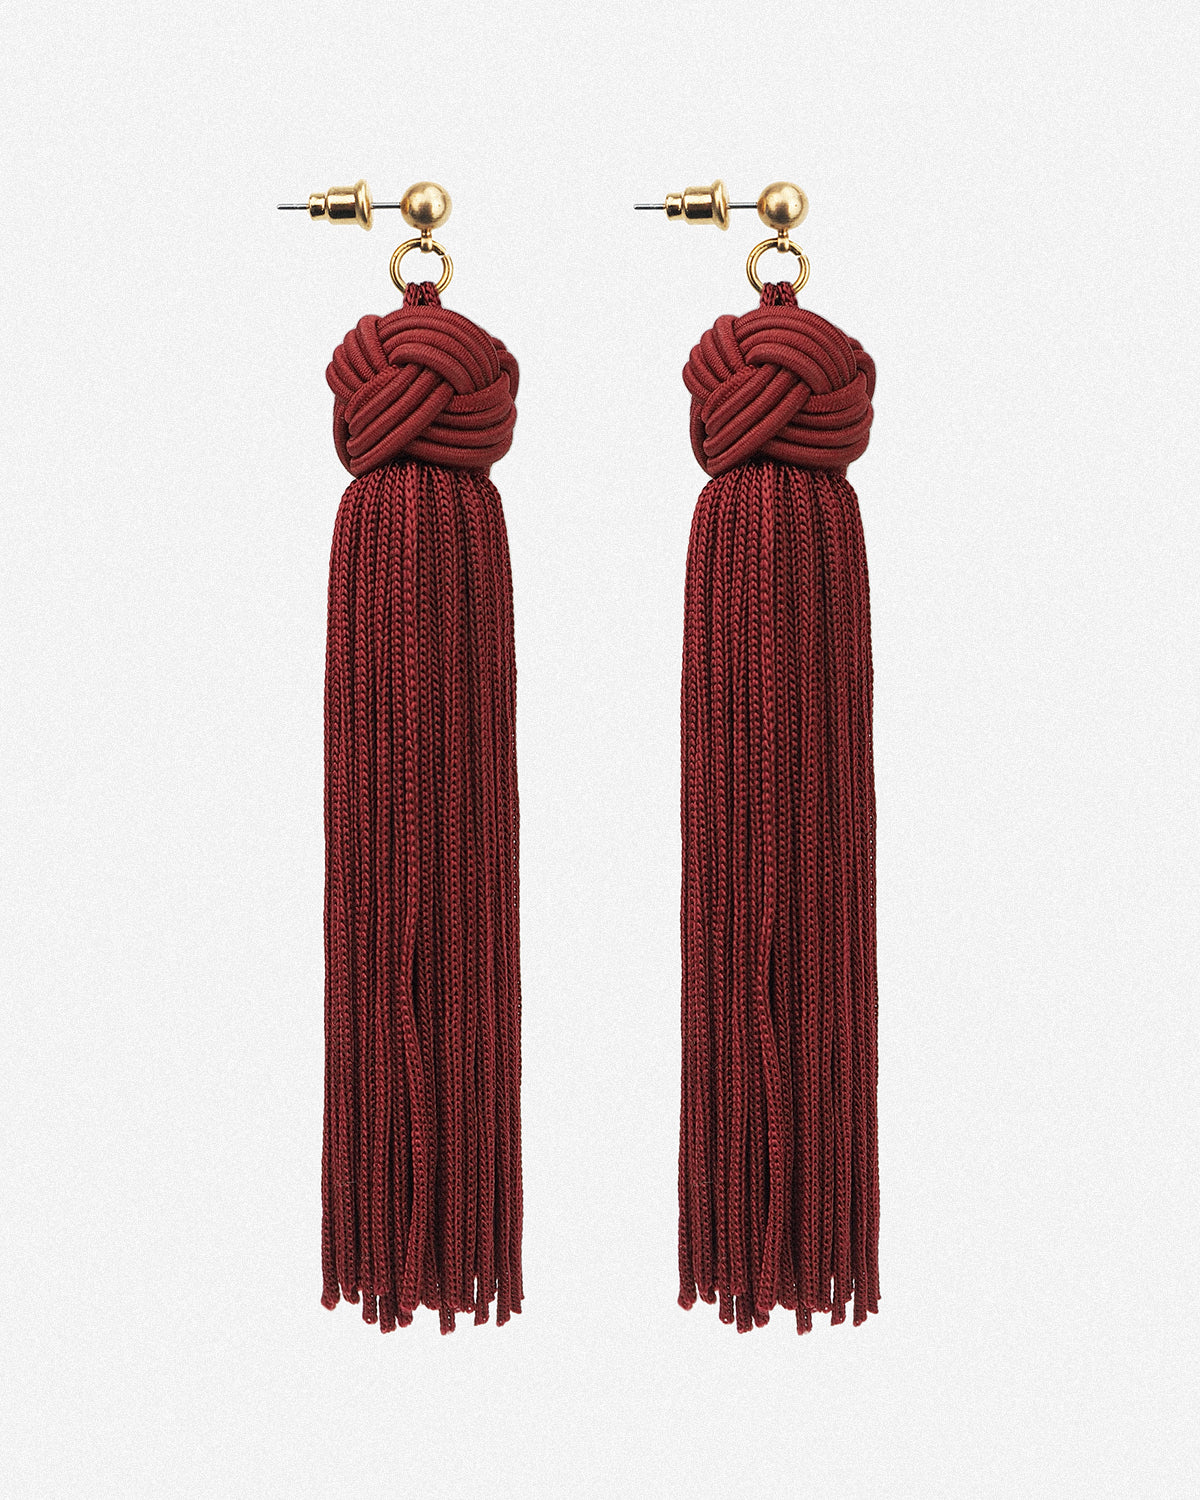 Image of Johanna Silky Tassel Drop Earrings - Red